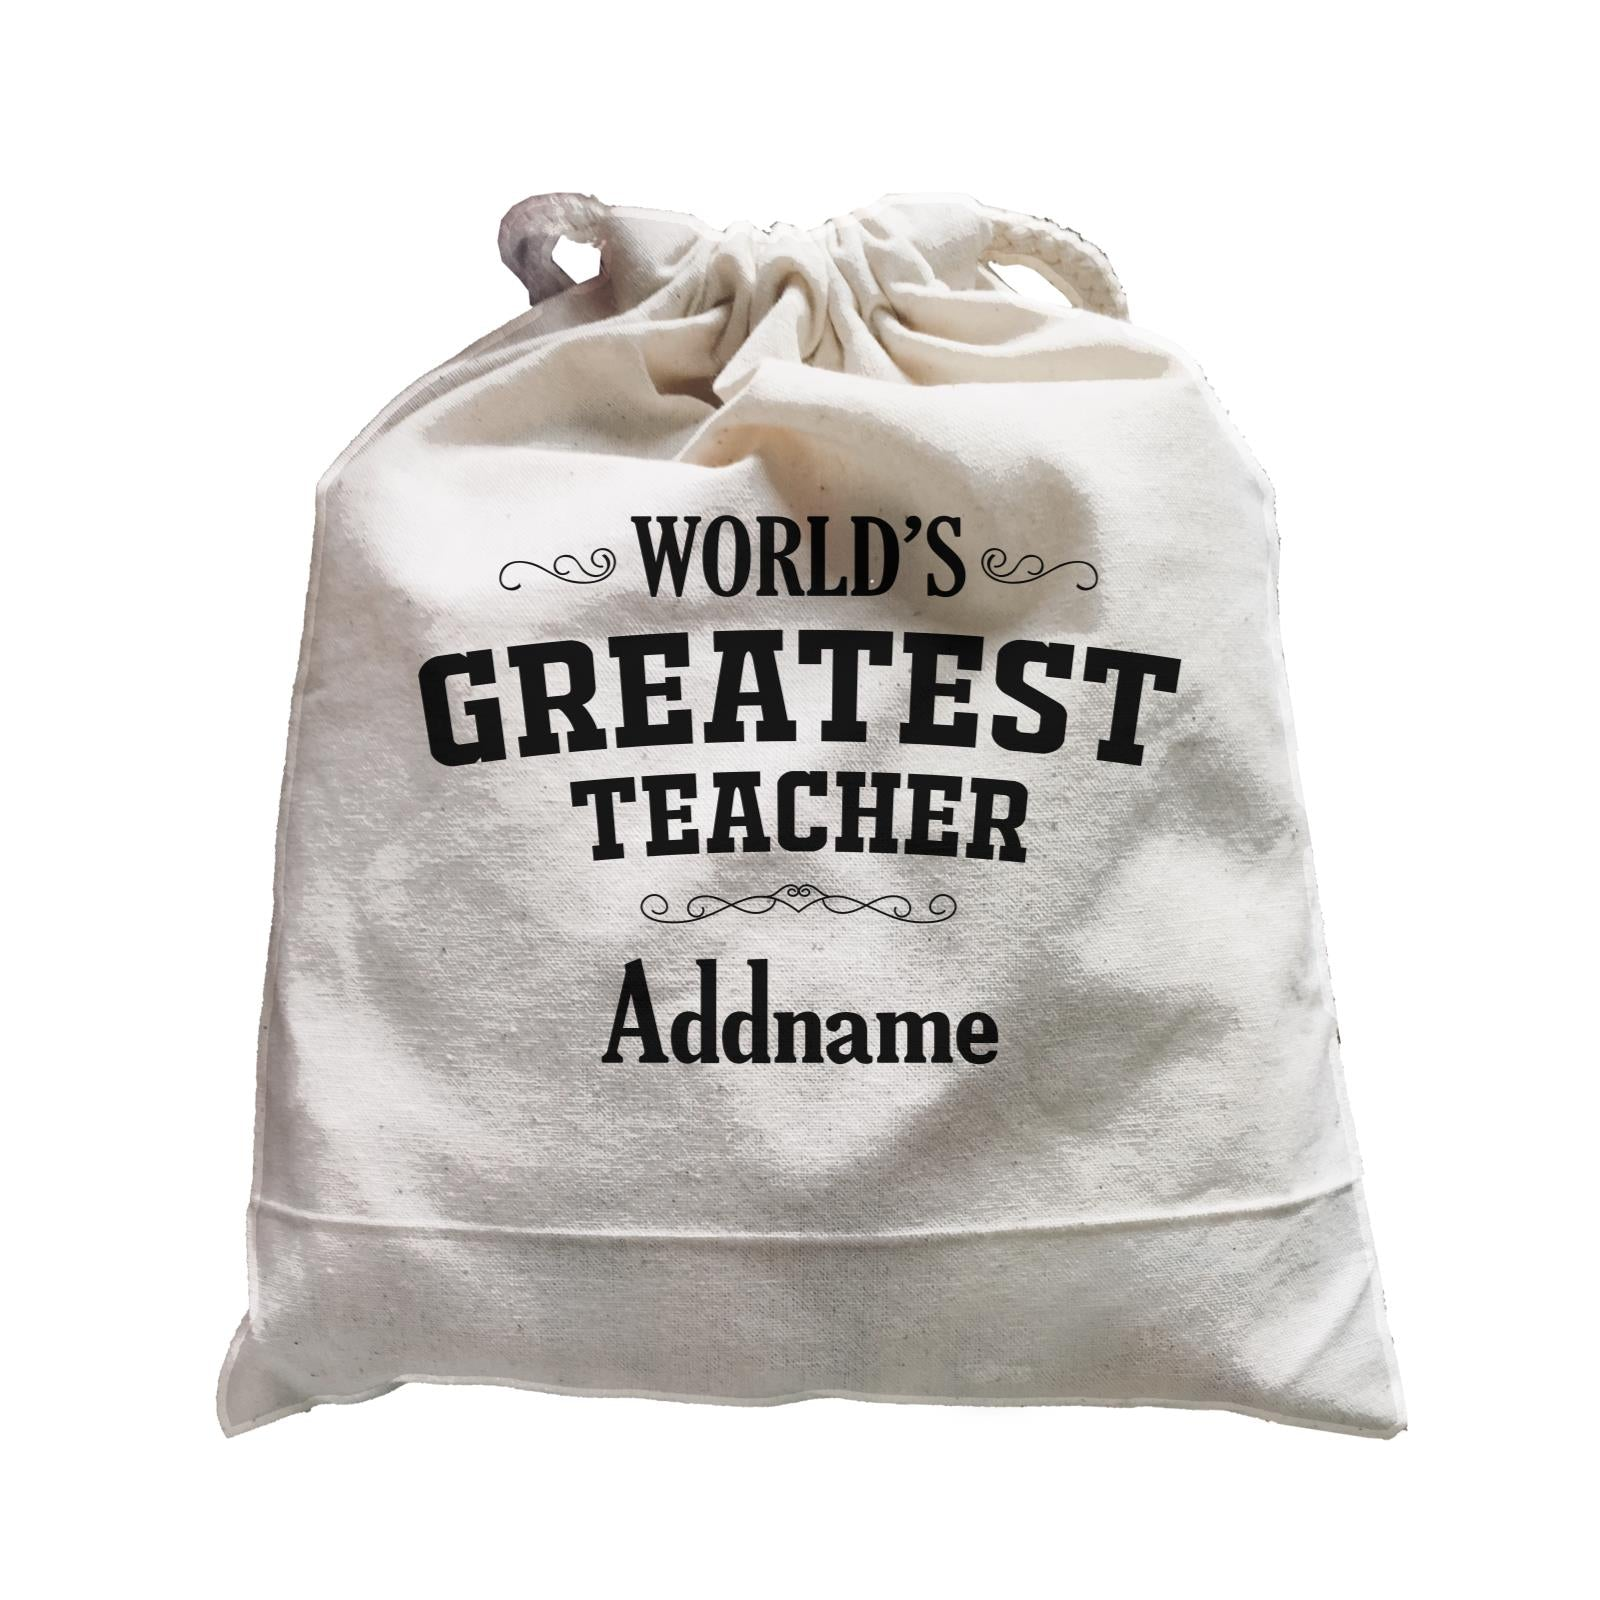 Great Teachers World's Greatest Teacher Addname Satchel